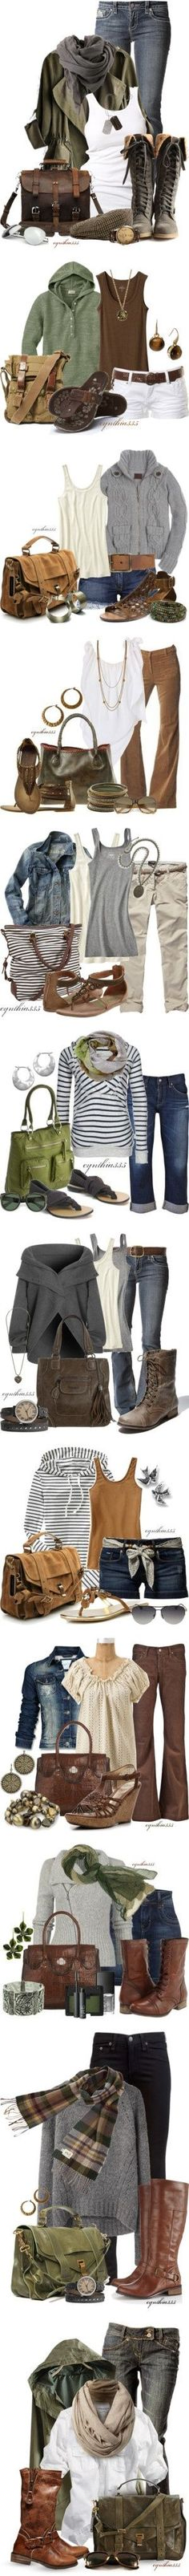 Earthy Comfort by cynthia335 on Polyvore